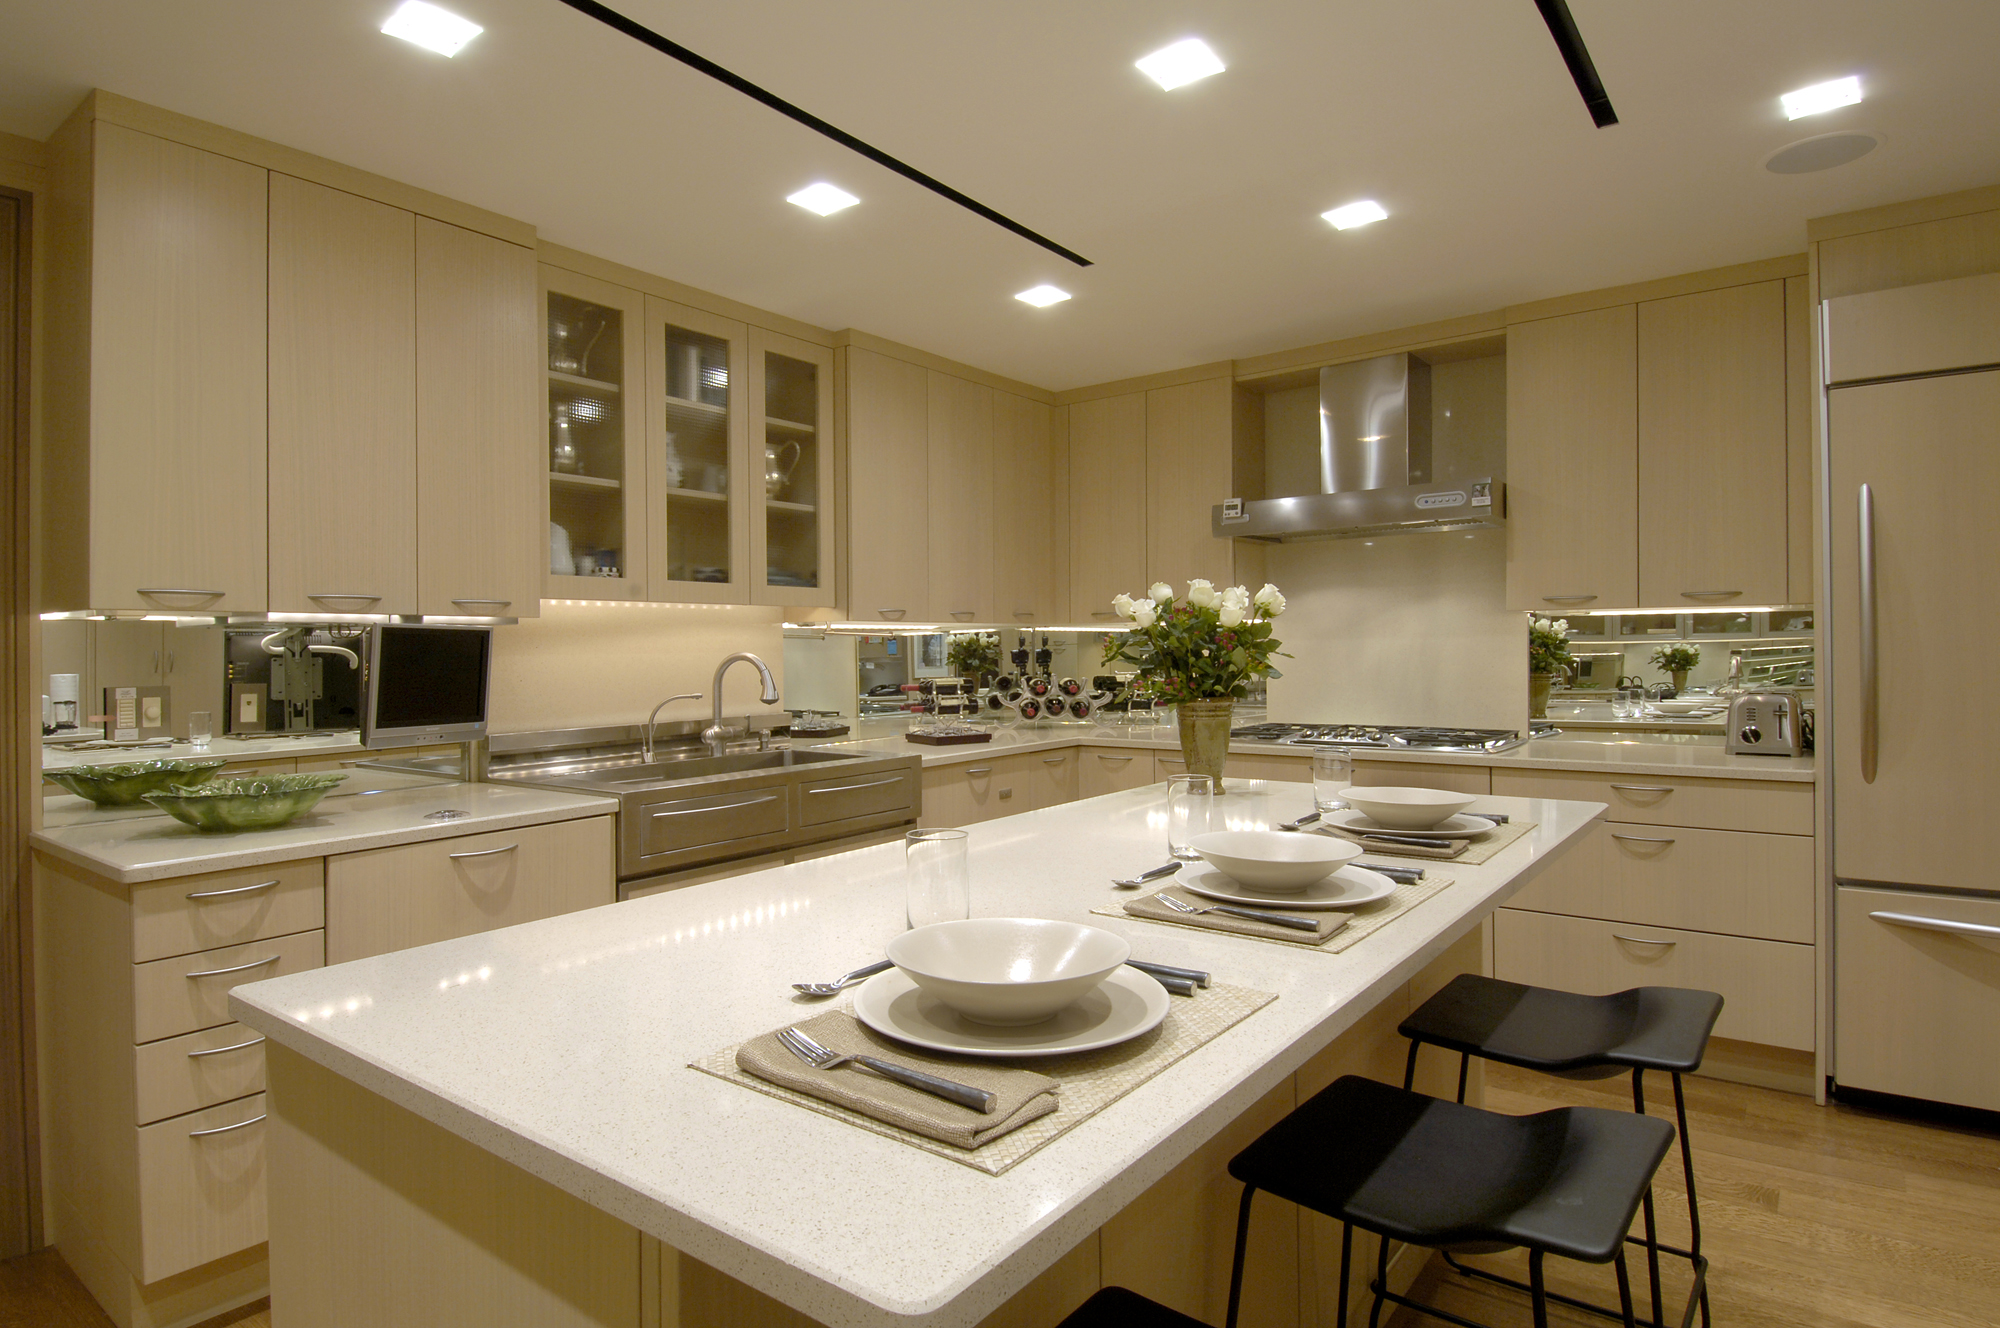 Kitchen Remodeling Washington Dc Decor Interior Mesmerizing Awardwinning Condominium Penthouse Renovation In Washington D.c. Decorating Design